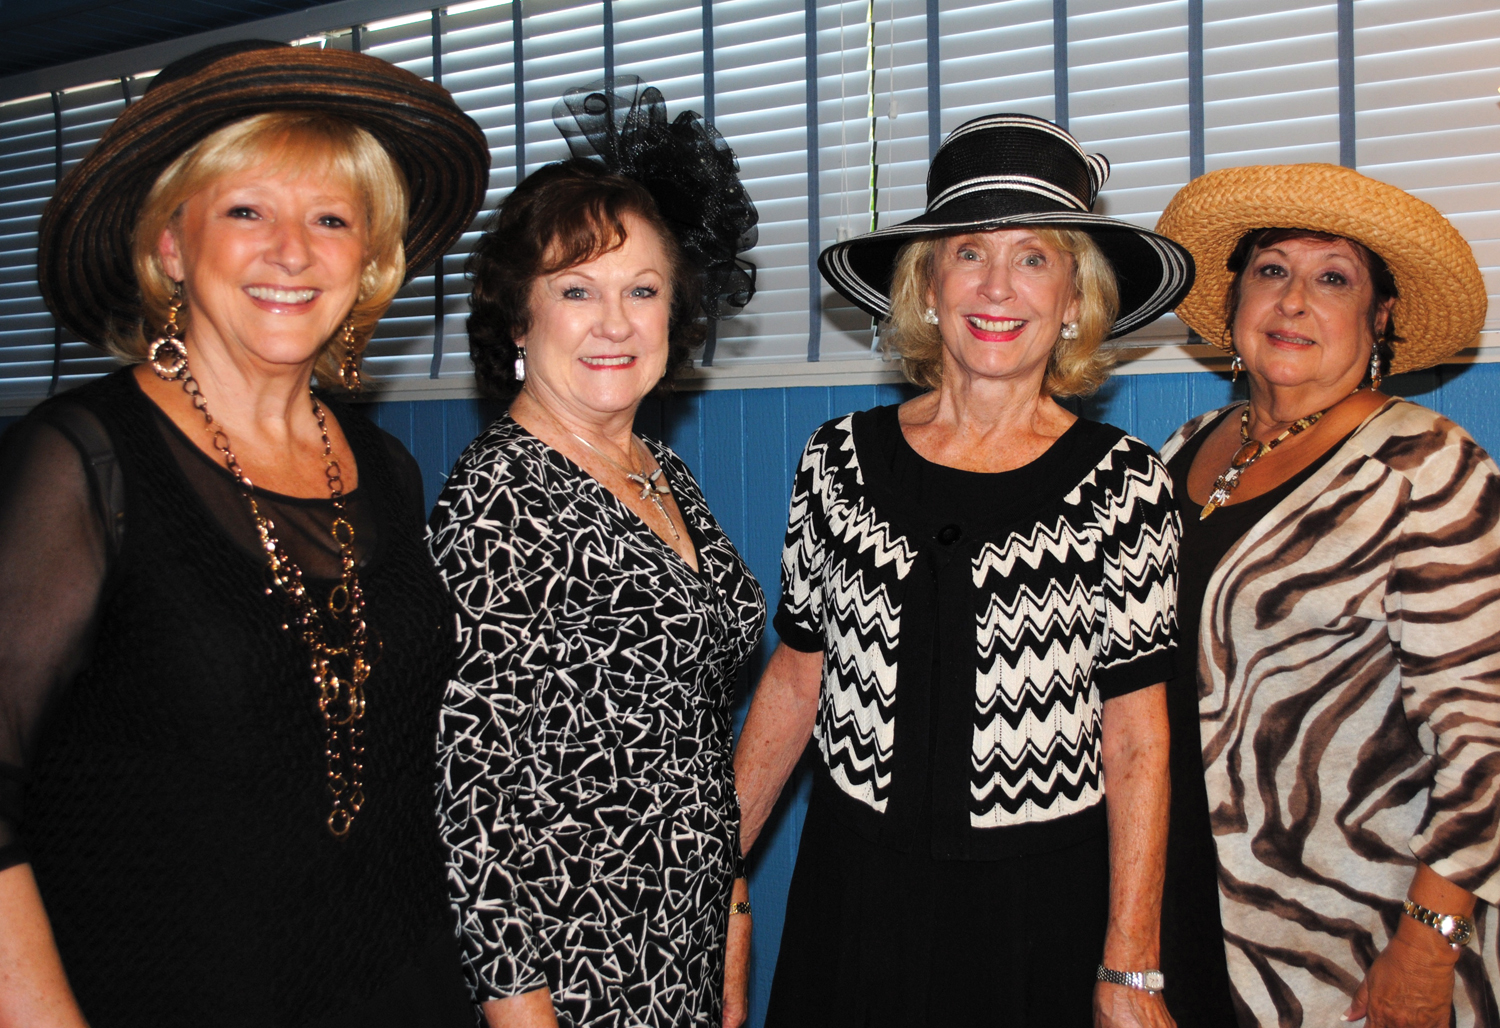 Lakewood Ladies Association members and guests enjoyed a British tradition as they gathered at the Yacht Club for Afternoon Tea. Among those enjoying the occasion were, from left, Era Lee Caldwell, Anita Fogtman, Mary Ellen Aldridge and Johnette Norman.